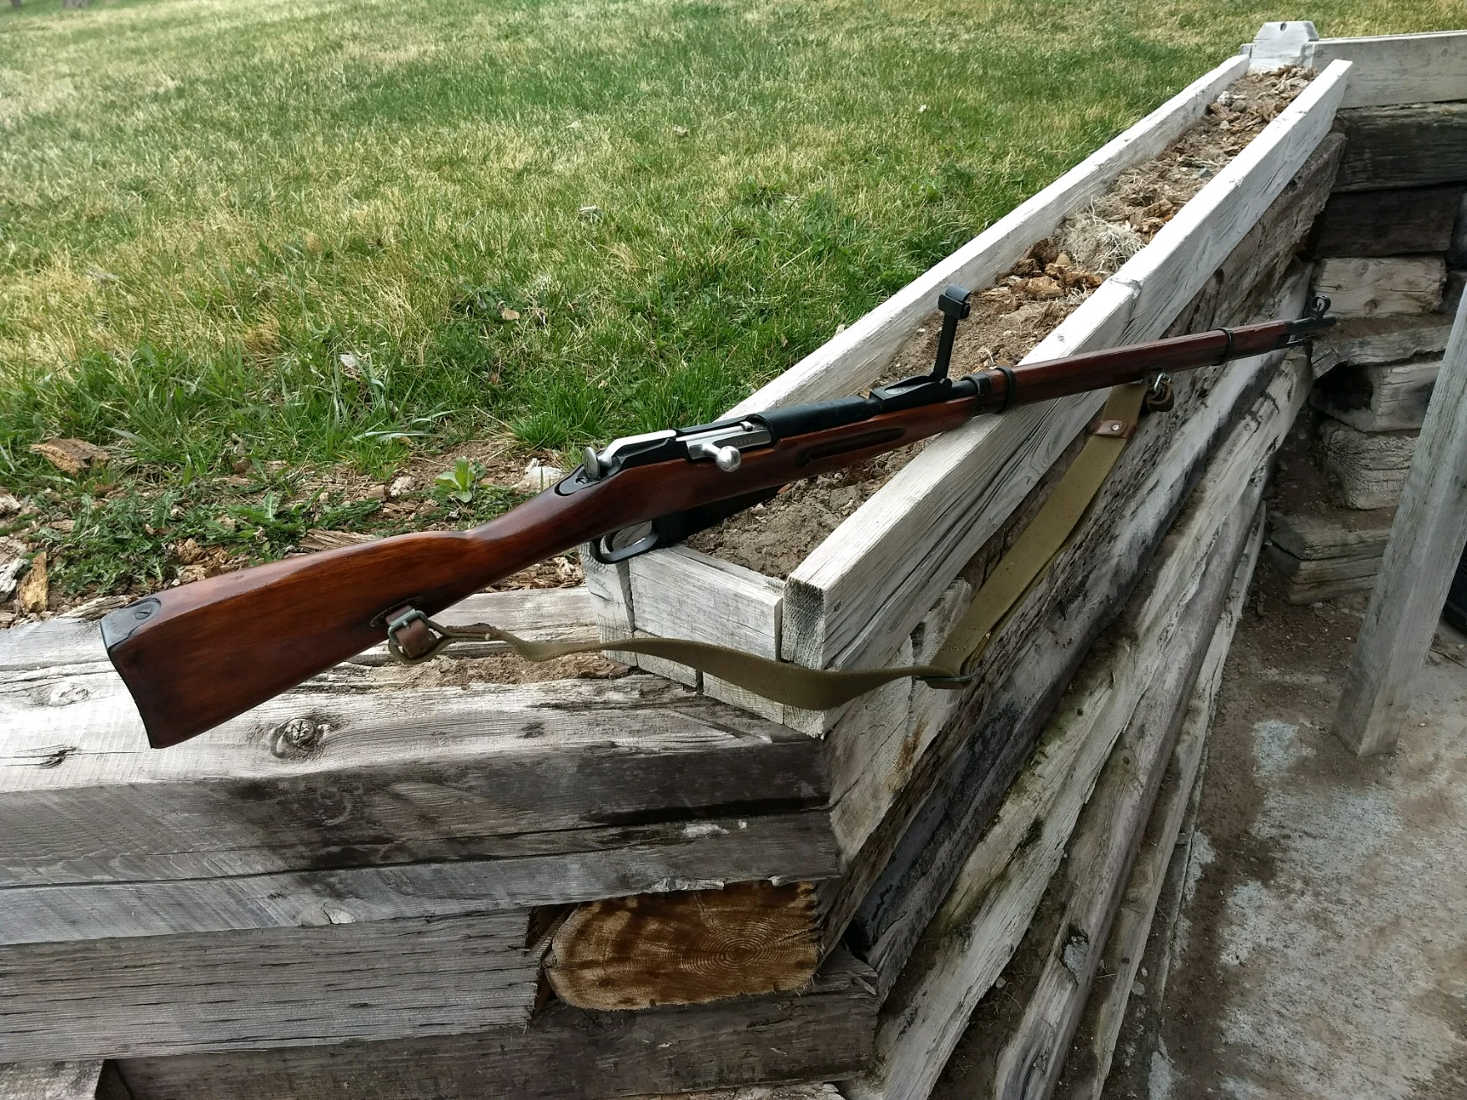 Mosin-Nagant Rifle Provides a Path from Modernity to a Mysterious, Violent Past